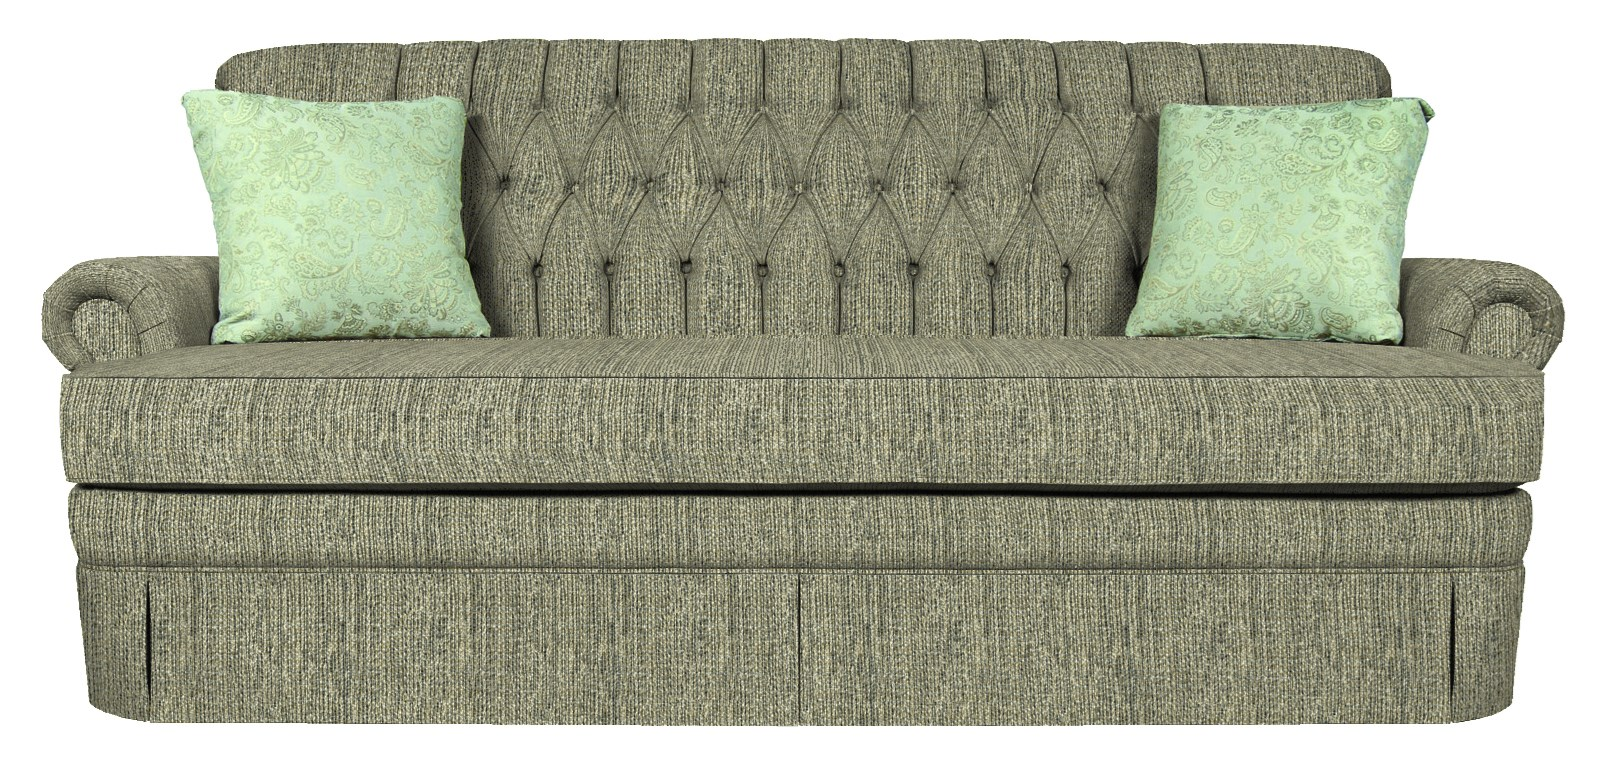 Fernwood Sofa by England at Lindy's Furniture Company